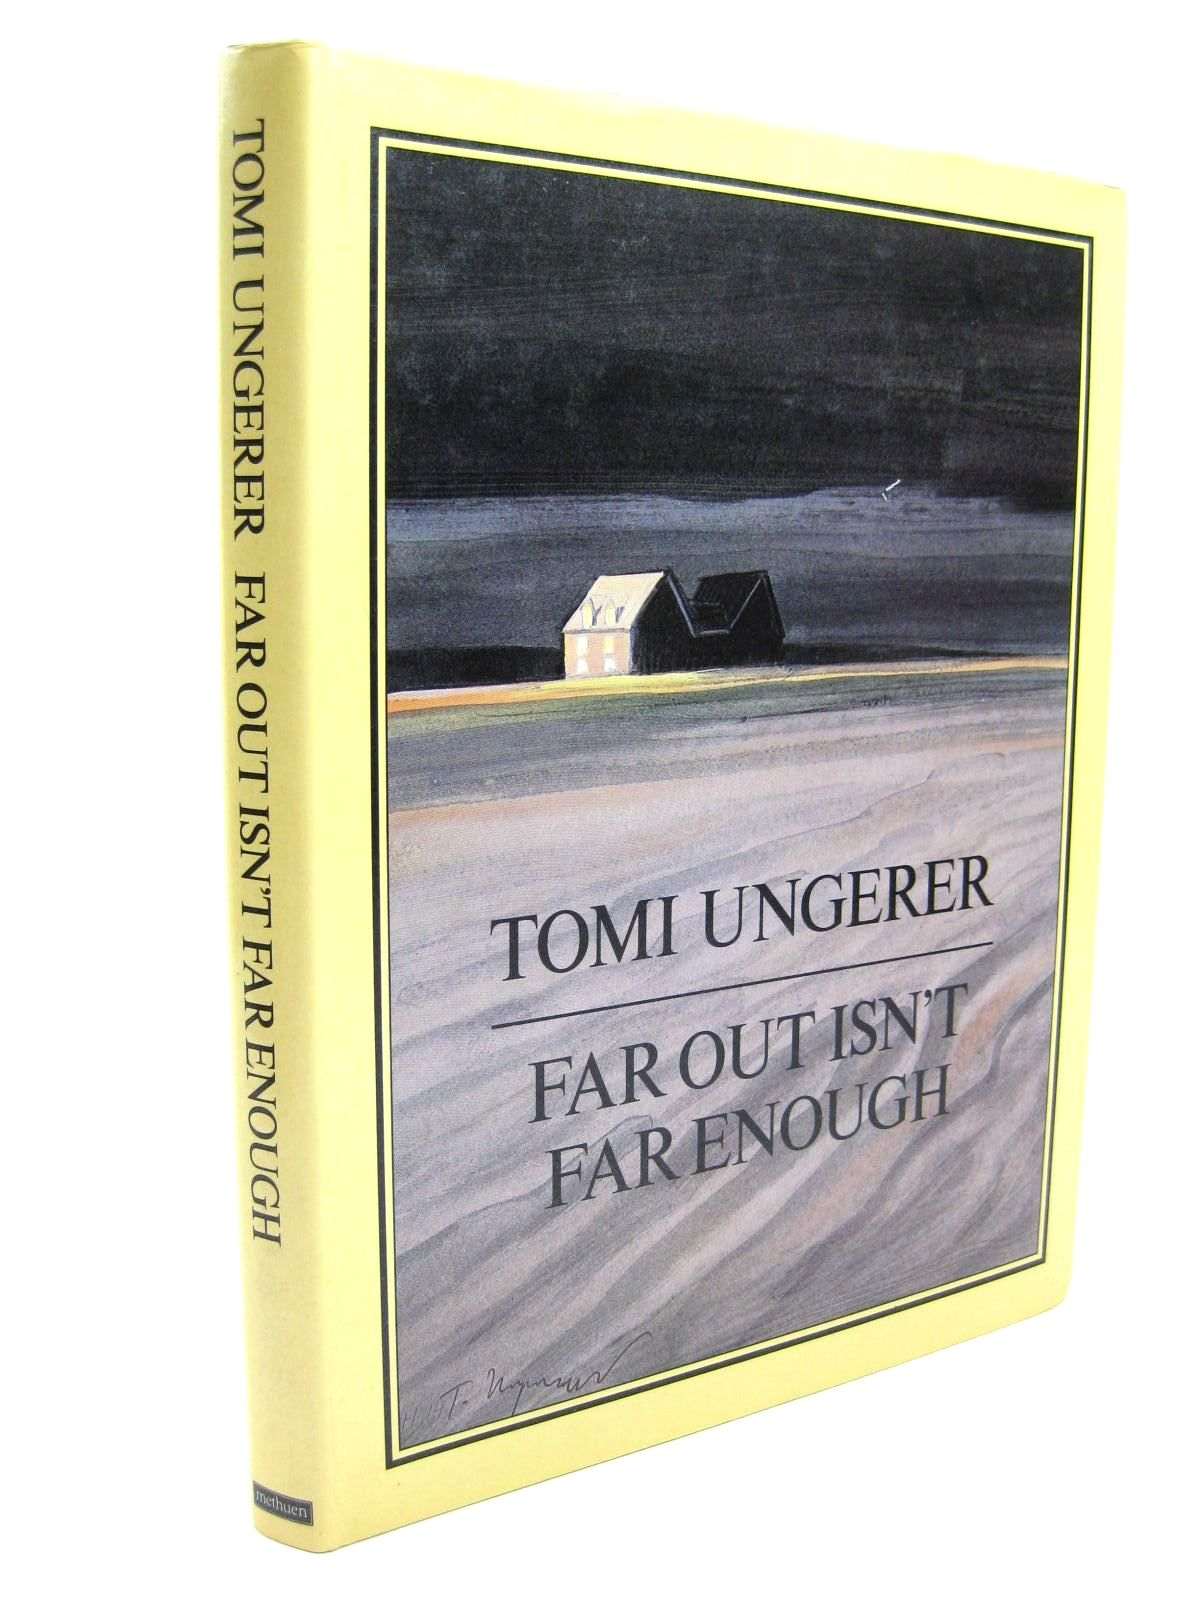 Photo of FAR OUT ISN'T FAR ENOUGH written by Ungerer, Tomi illustrated by Ungerer, Tomi published by Methuen London Ltd (STOCK CODE: 1316272)  for sale by Stella & Rose's Books